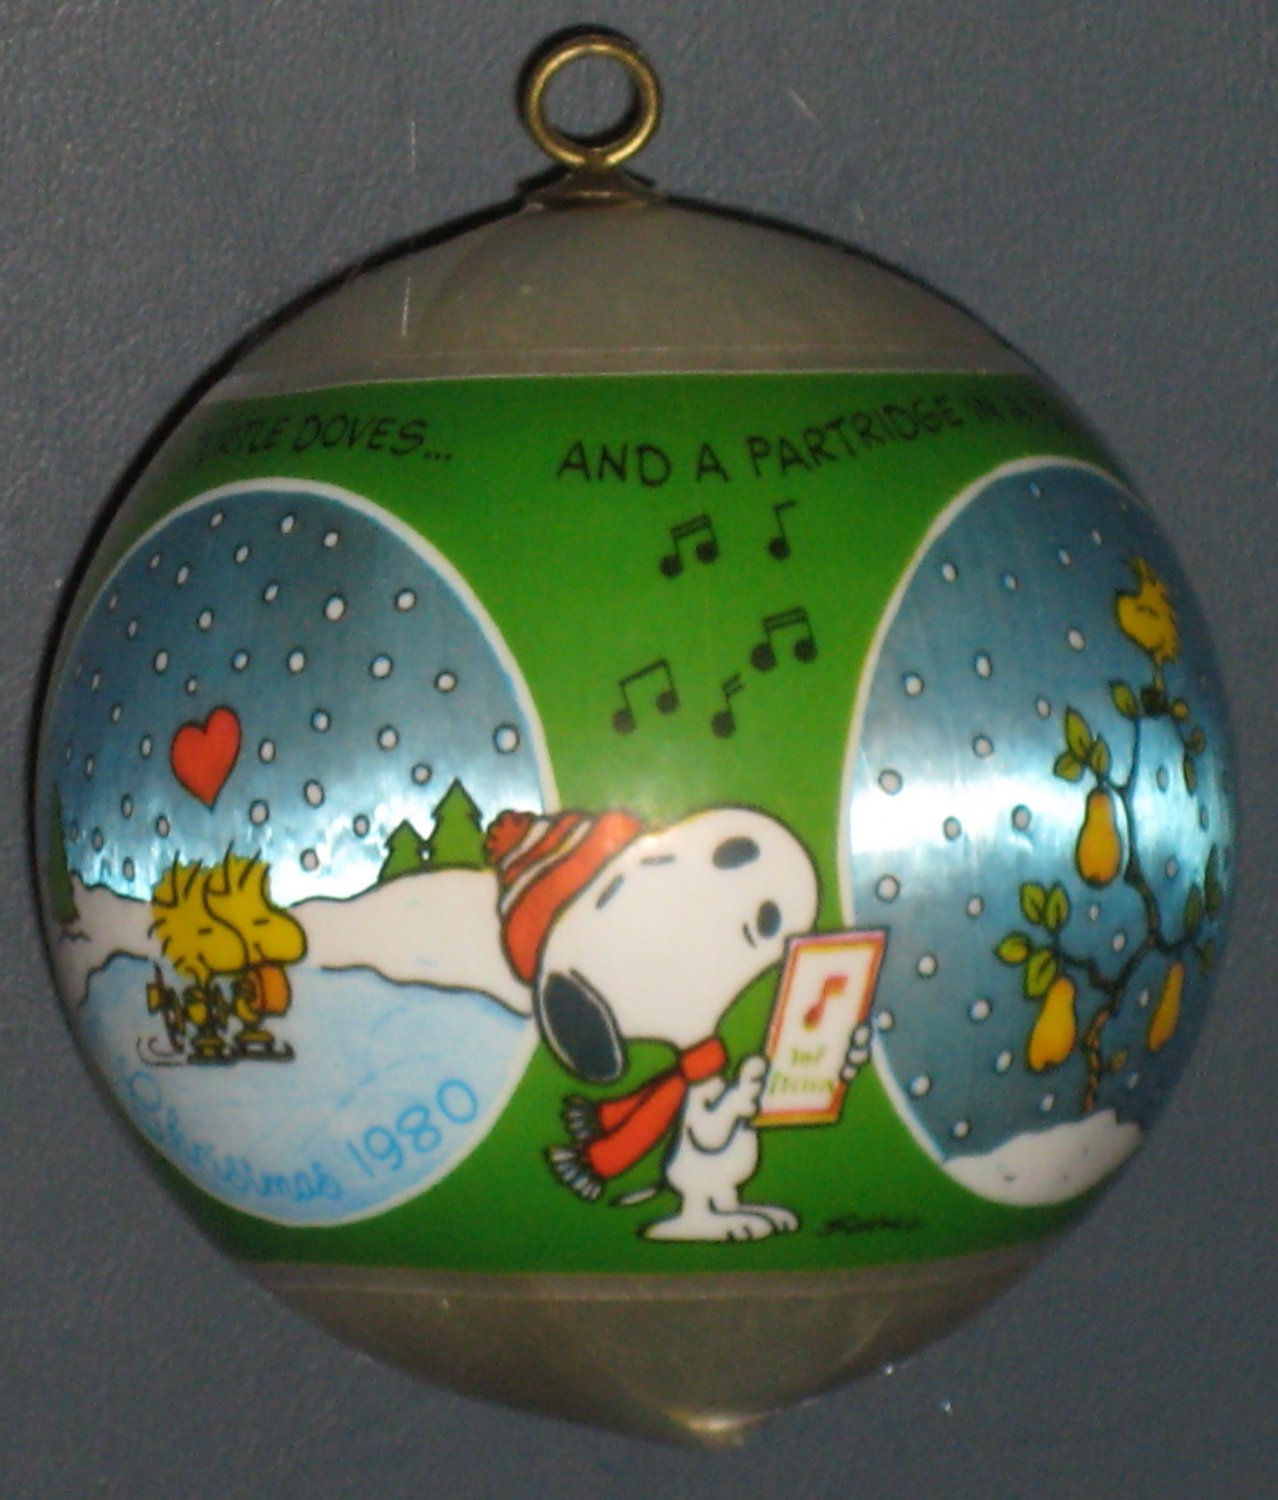 SOLD Snoopy & Woodstock 1980 12 Days of Christmas Ball Ornament Joe Cool Peanuts Gang